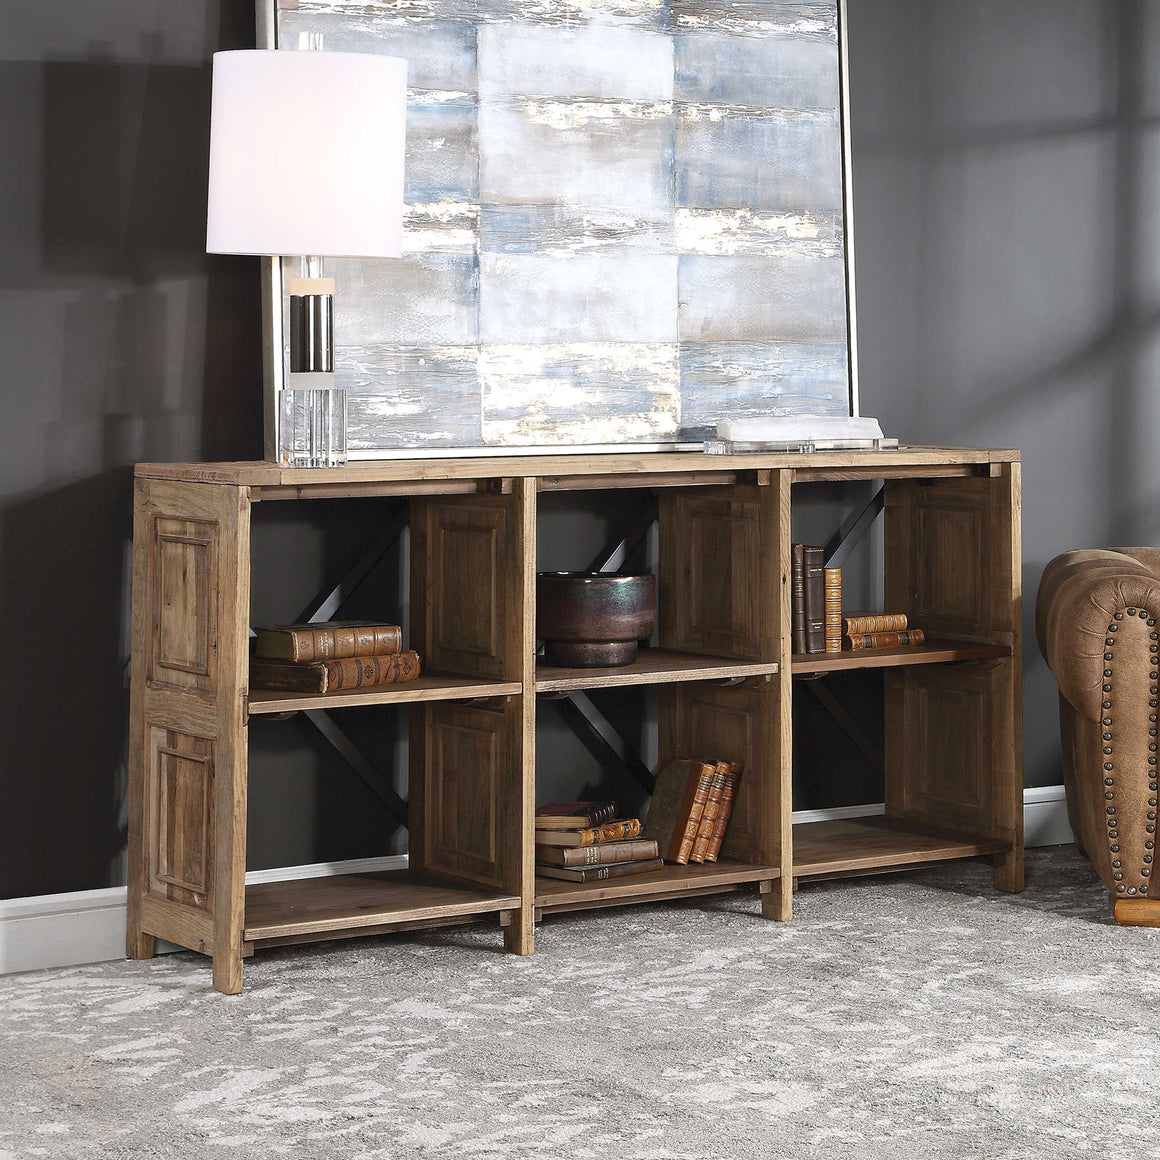 Bryce Salvaged Wood Console Table